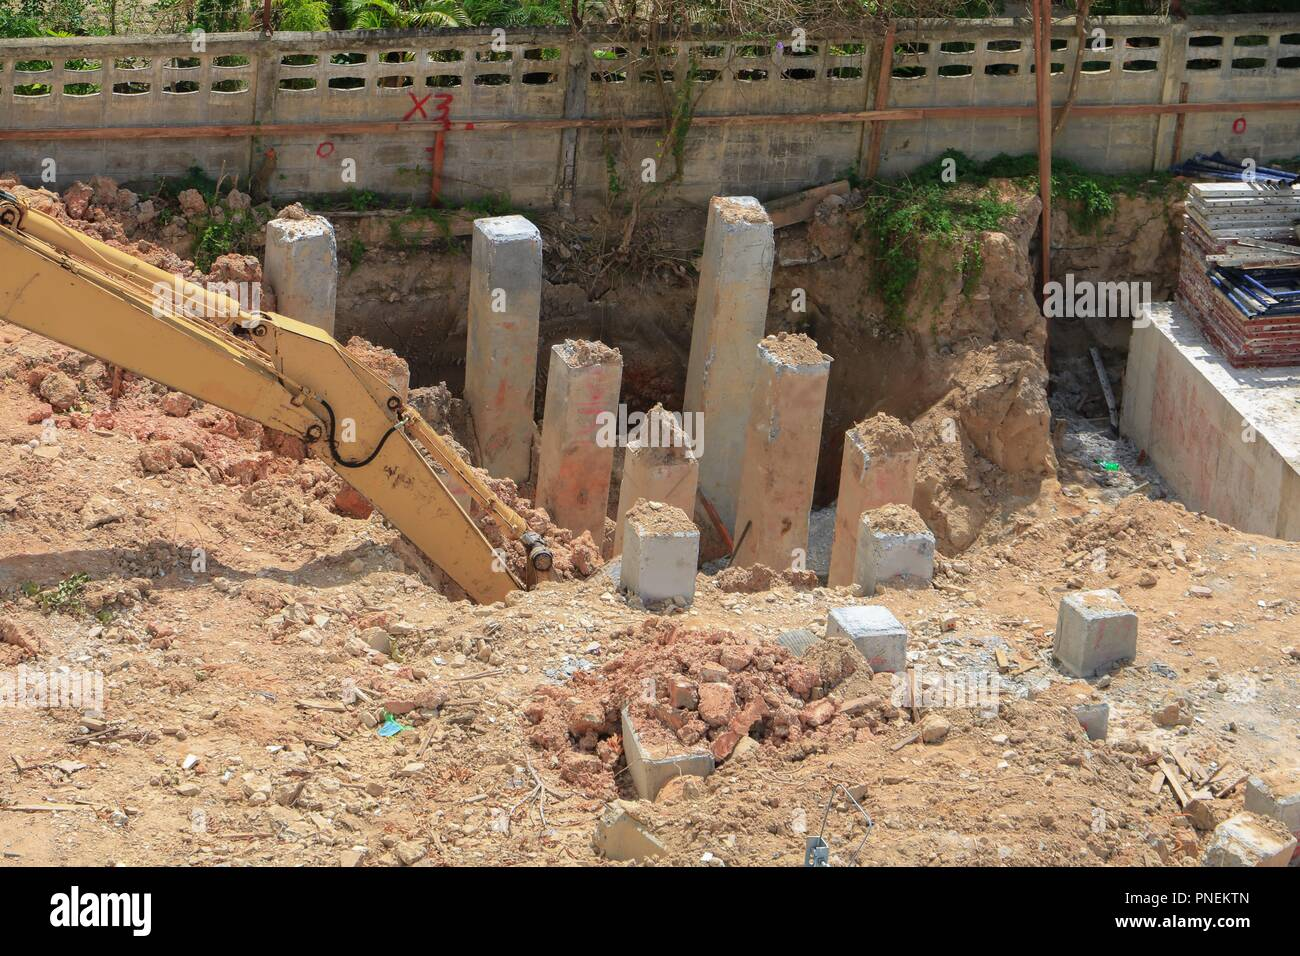 excavators work dig a hole in construction work industry at building site - Stock Image